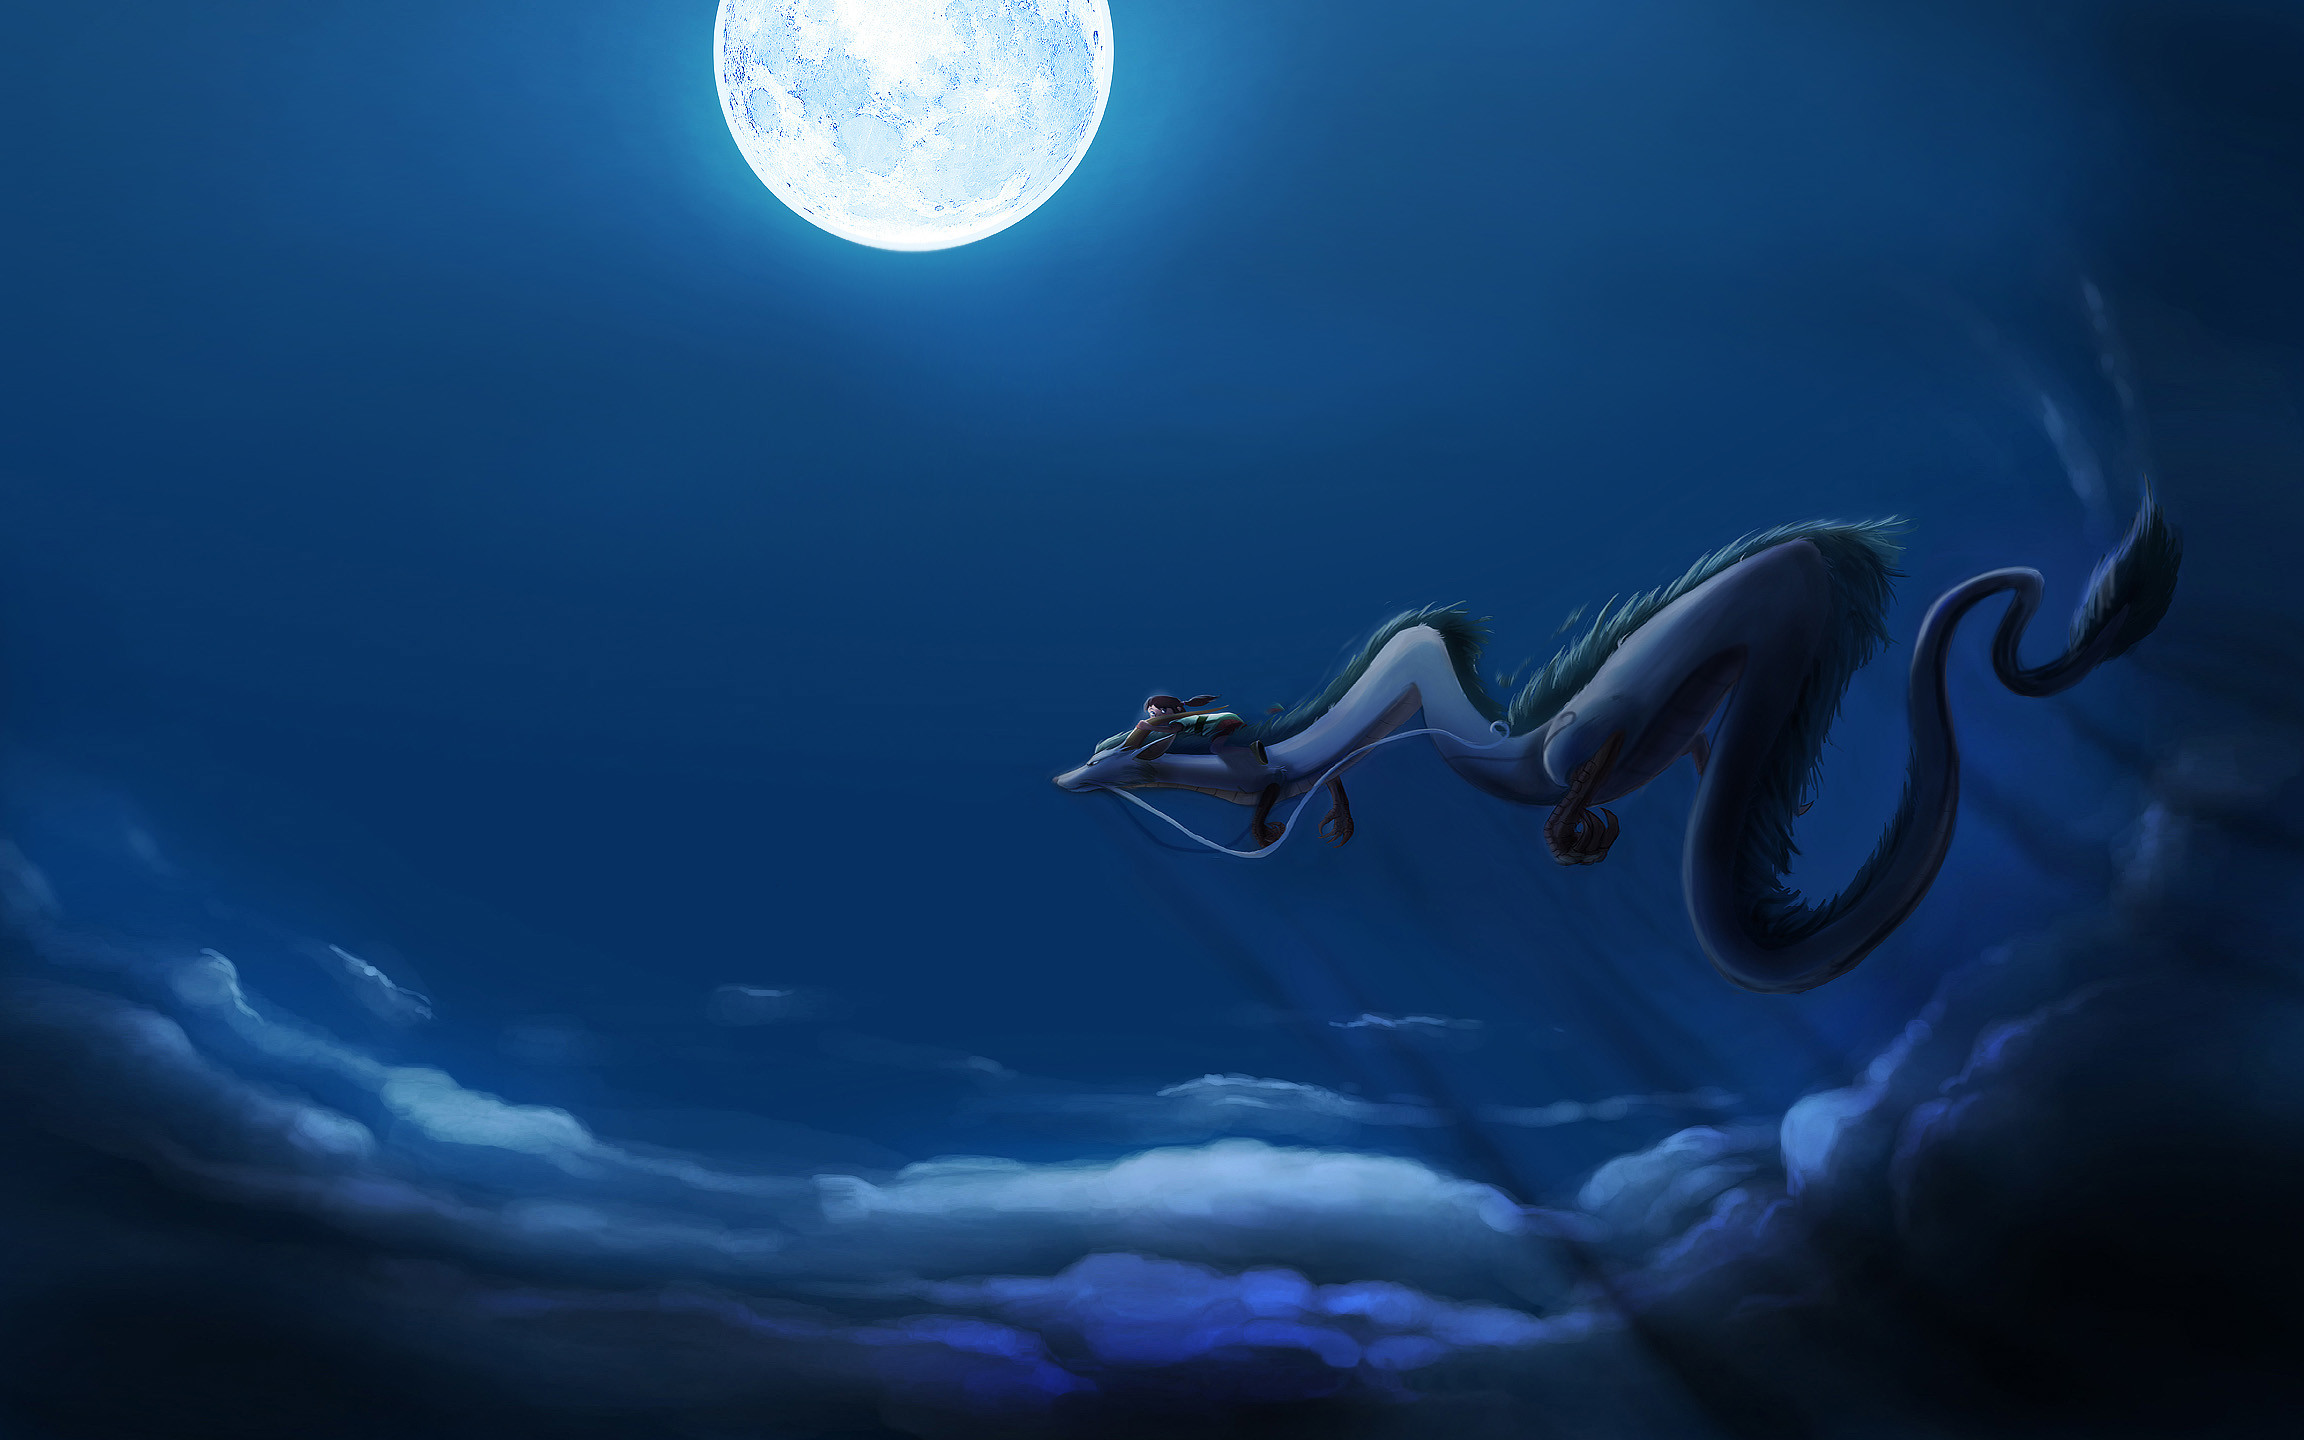 2304x1440 Spirited Away images Chihiro and Haku HD wallpaper and background photos